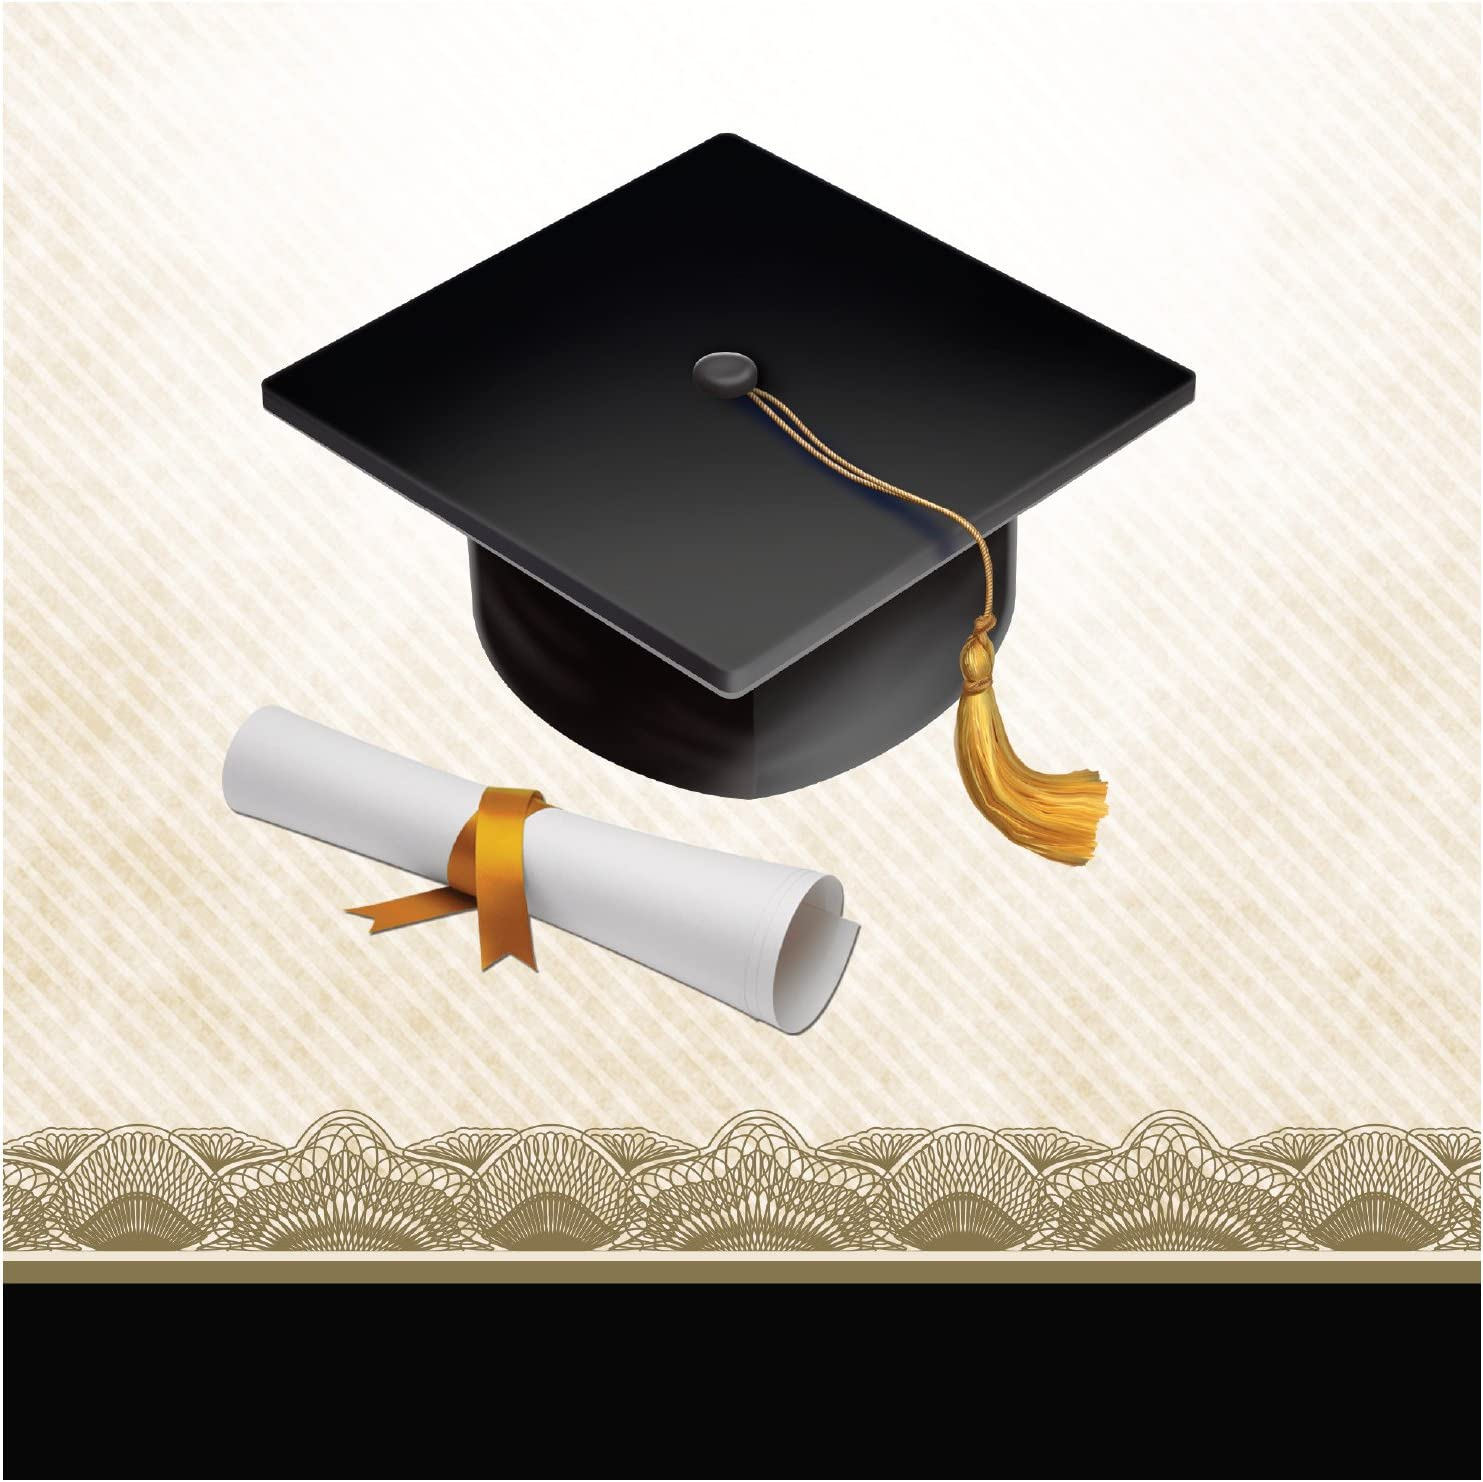 Creative Converting 16 Count Paper Beverage Napkins, Cap and Gown, Black/White/Gold